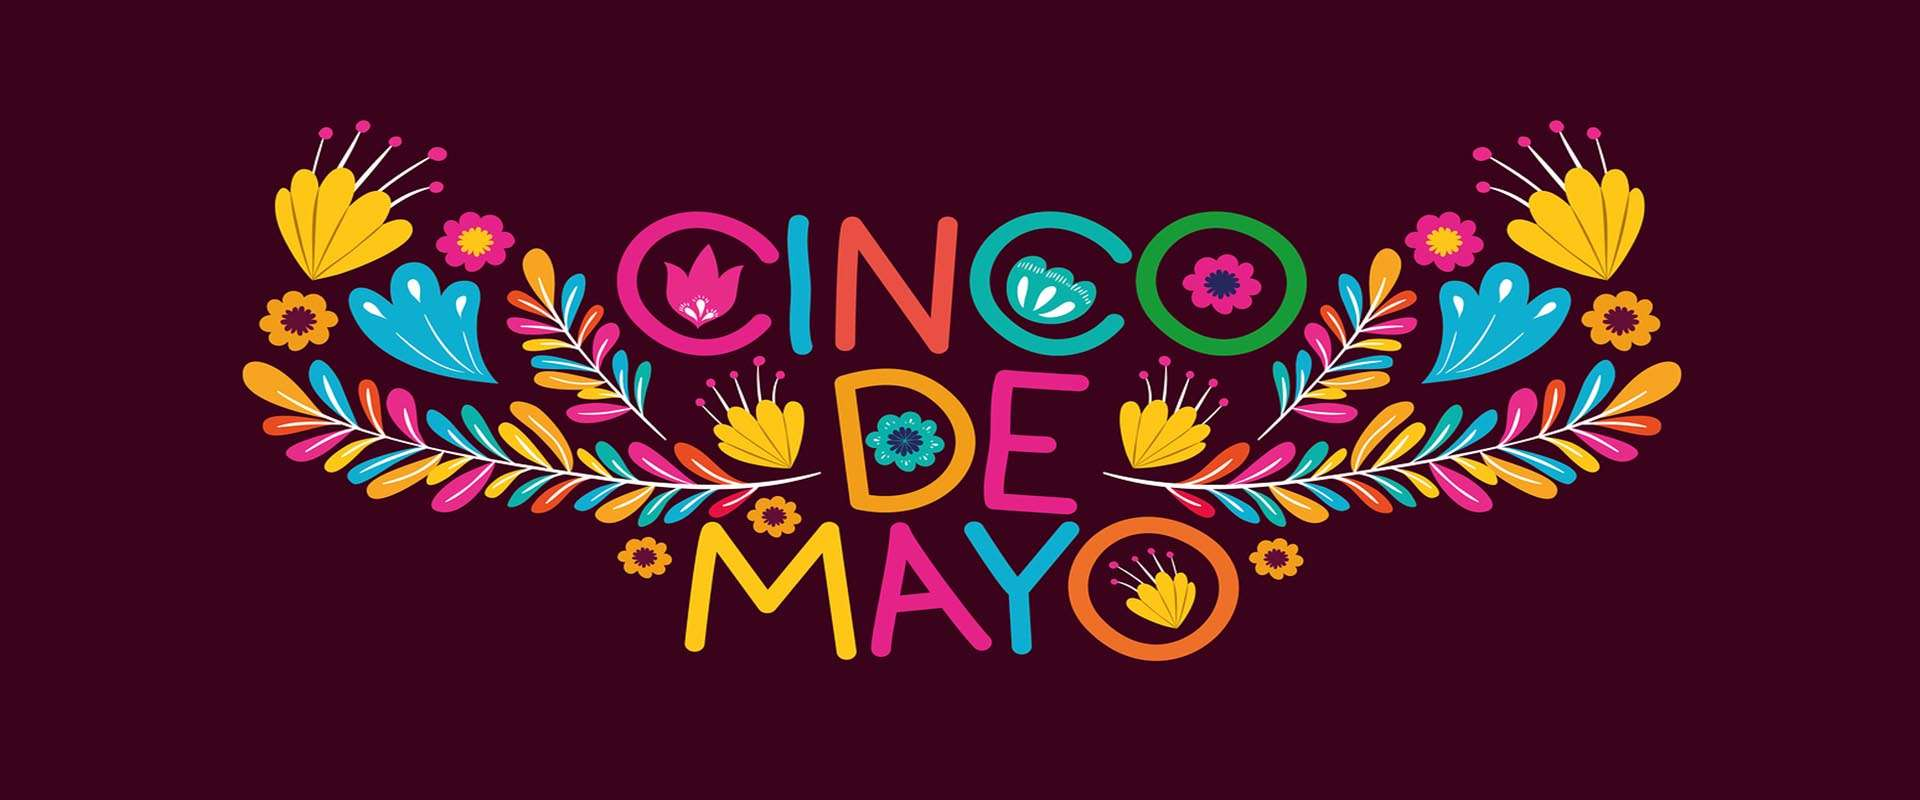 Cinco de Mayo party Saturday May 4th